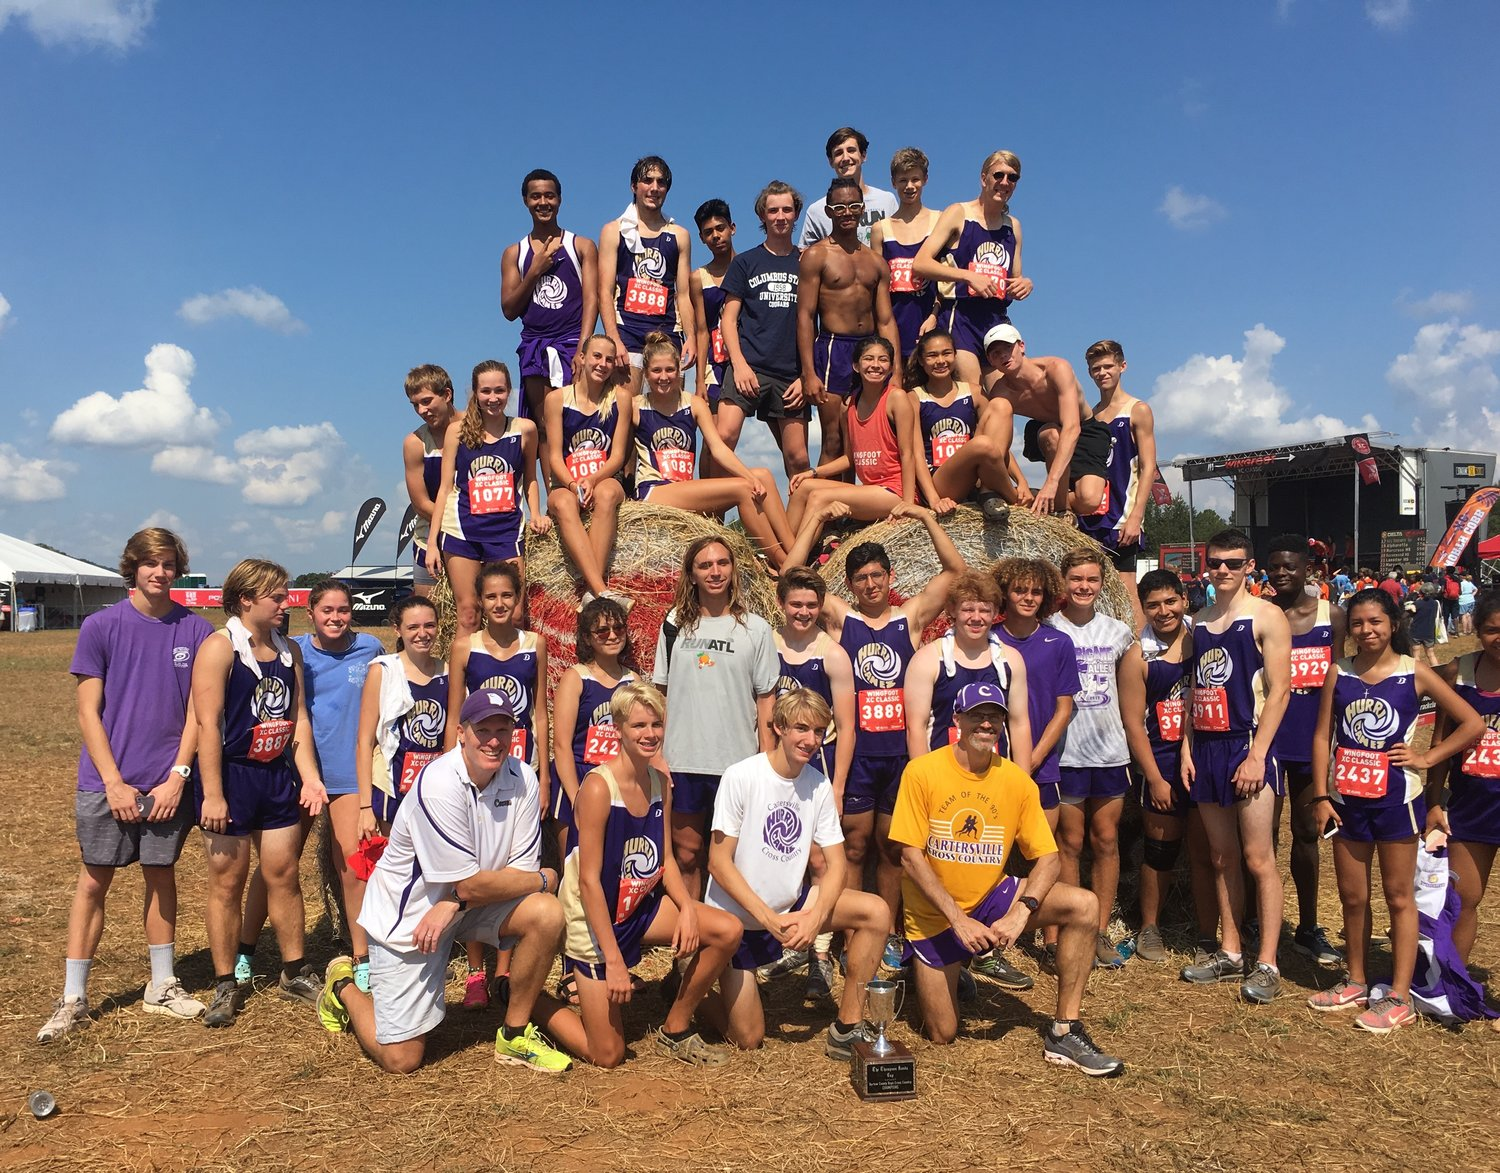 The Cartersville High cross country team poses around a bale of hay near the course of the Wingfoot XC Classic at Sam Smith Park Saturday.